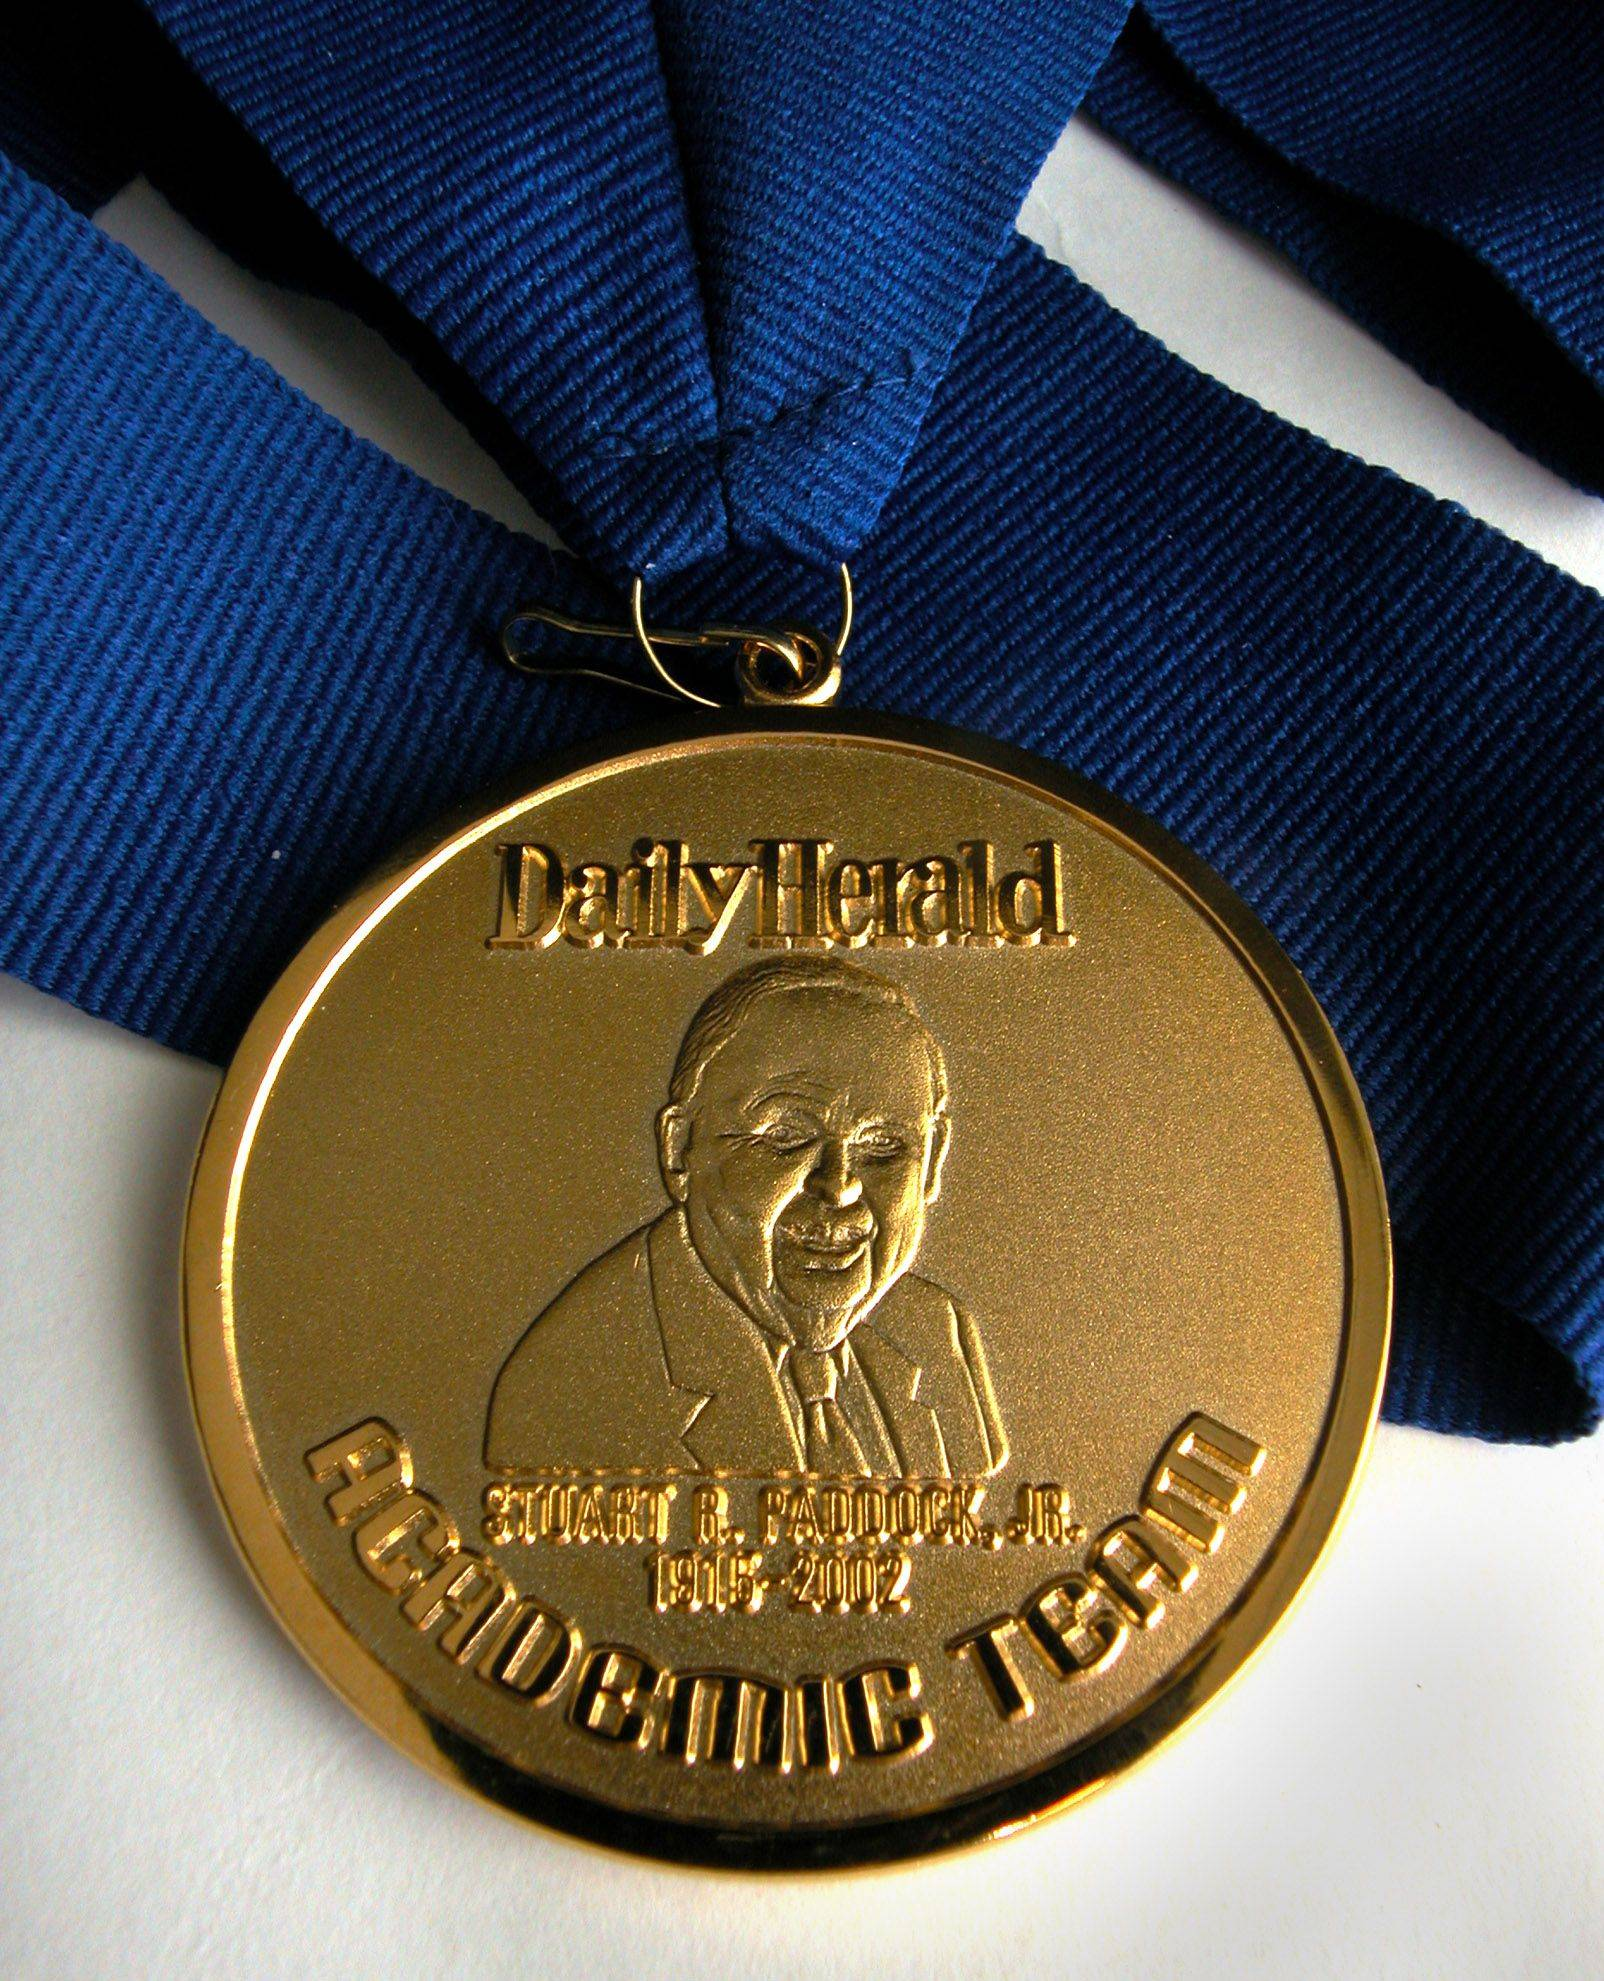 The Academic Team medallion, featuring the likeness of Stuart R. Paddock Jr., is won by each member.